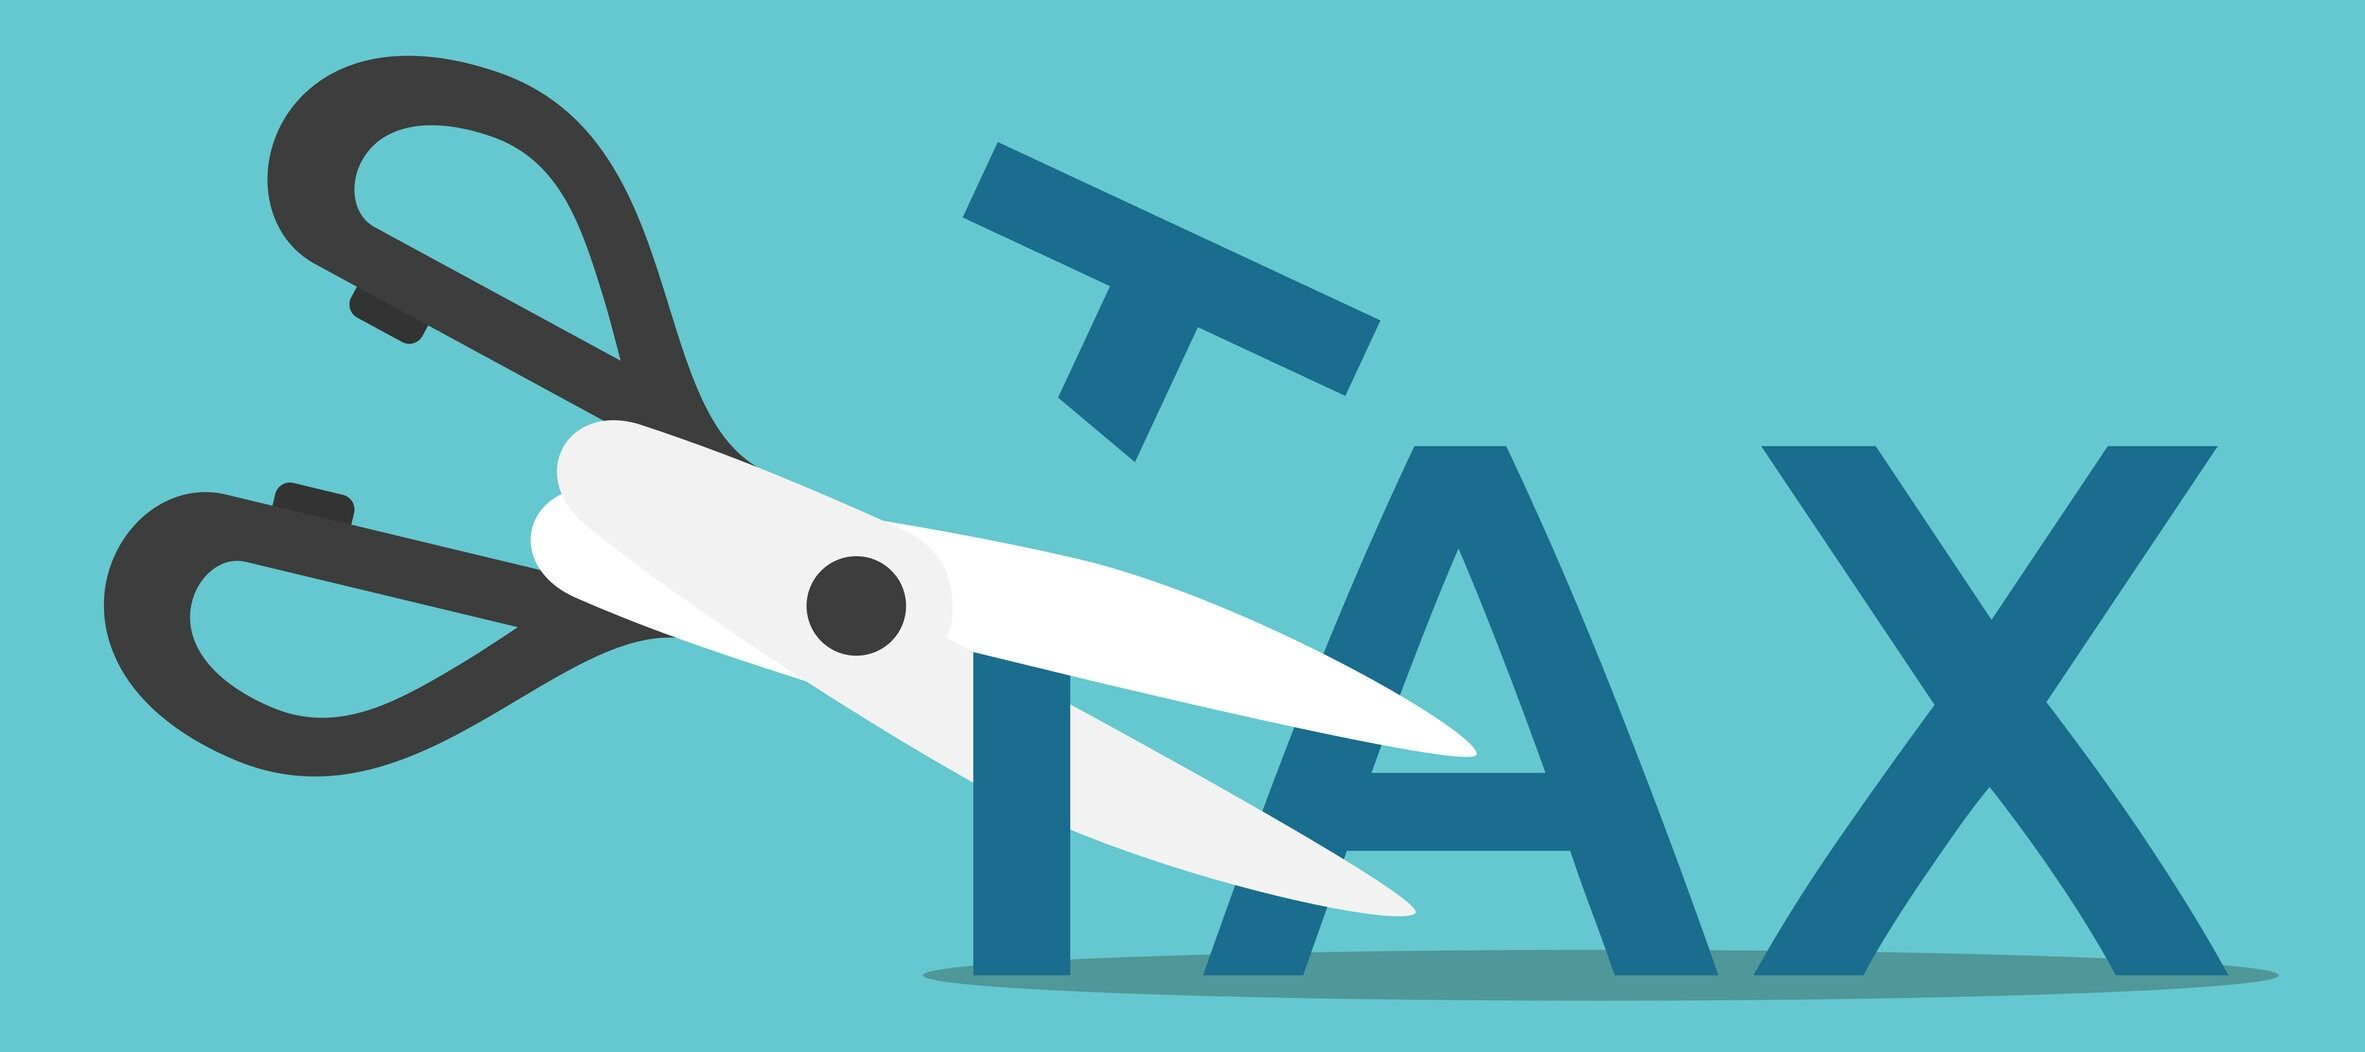 Scissors cutting word tax on blue background. Business, finance and profit concept. Flat design. EPS 8 vector illustration, no transparency